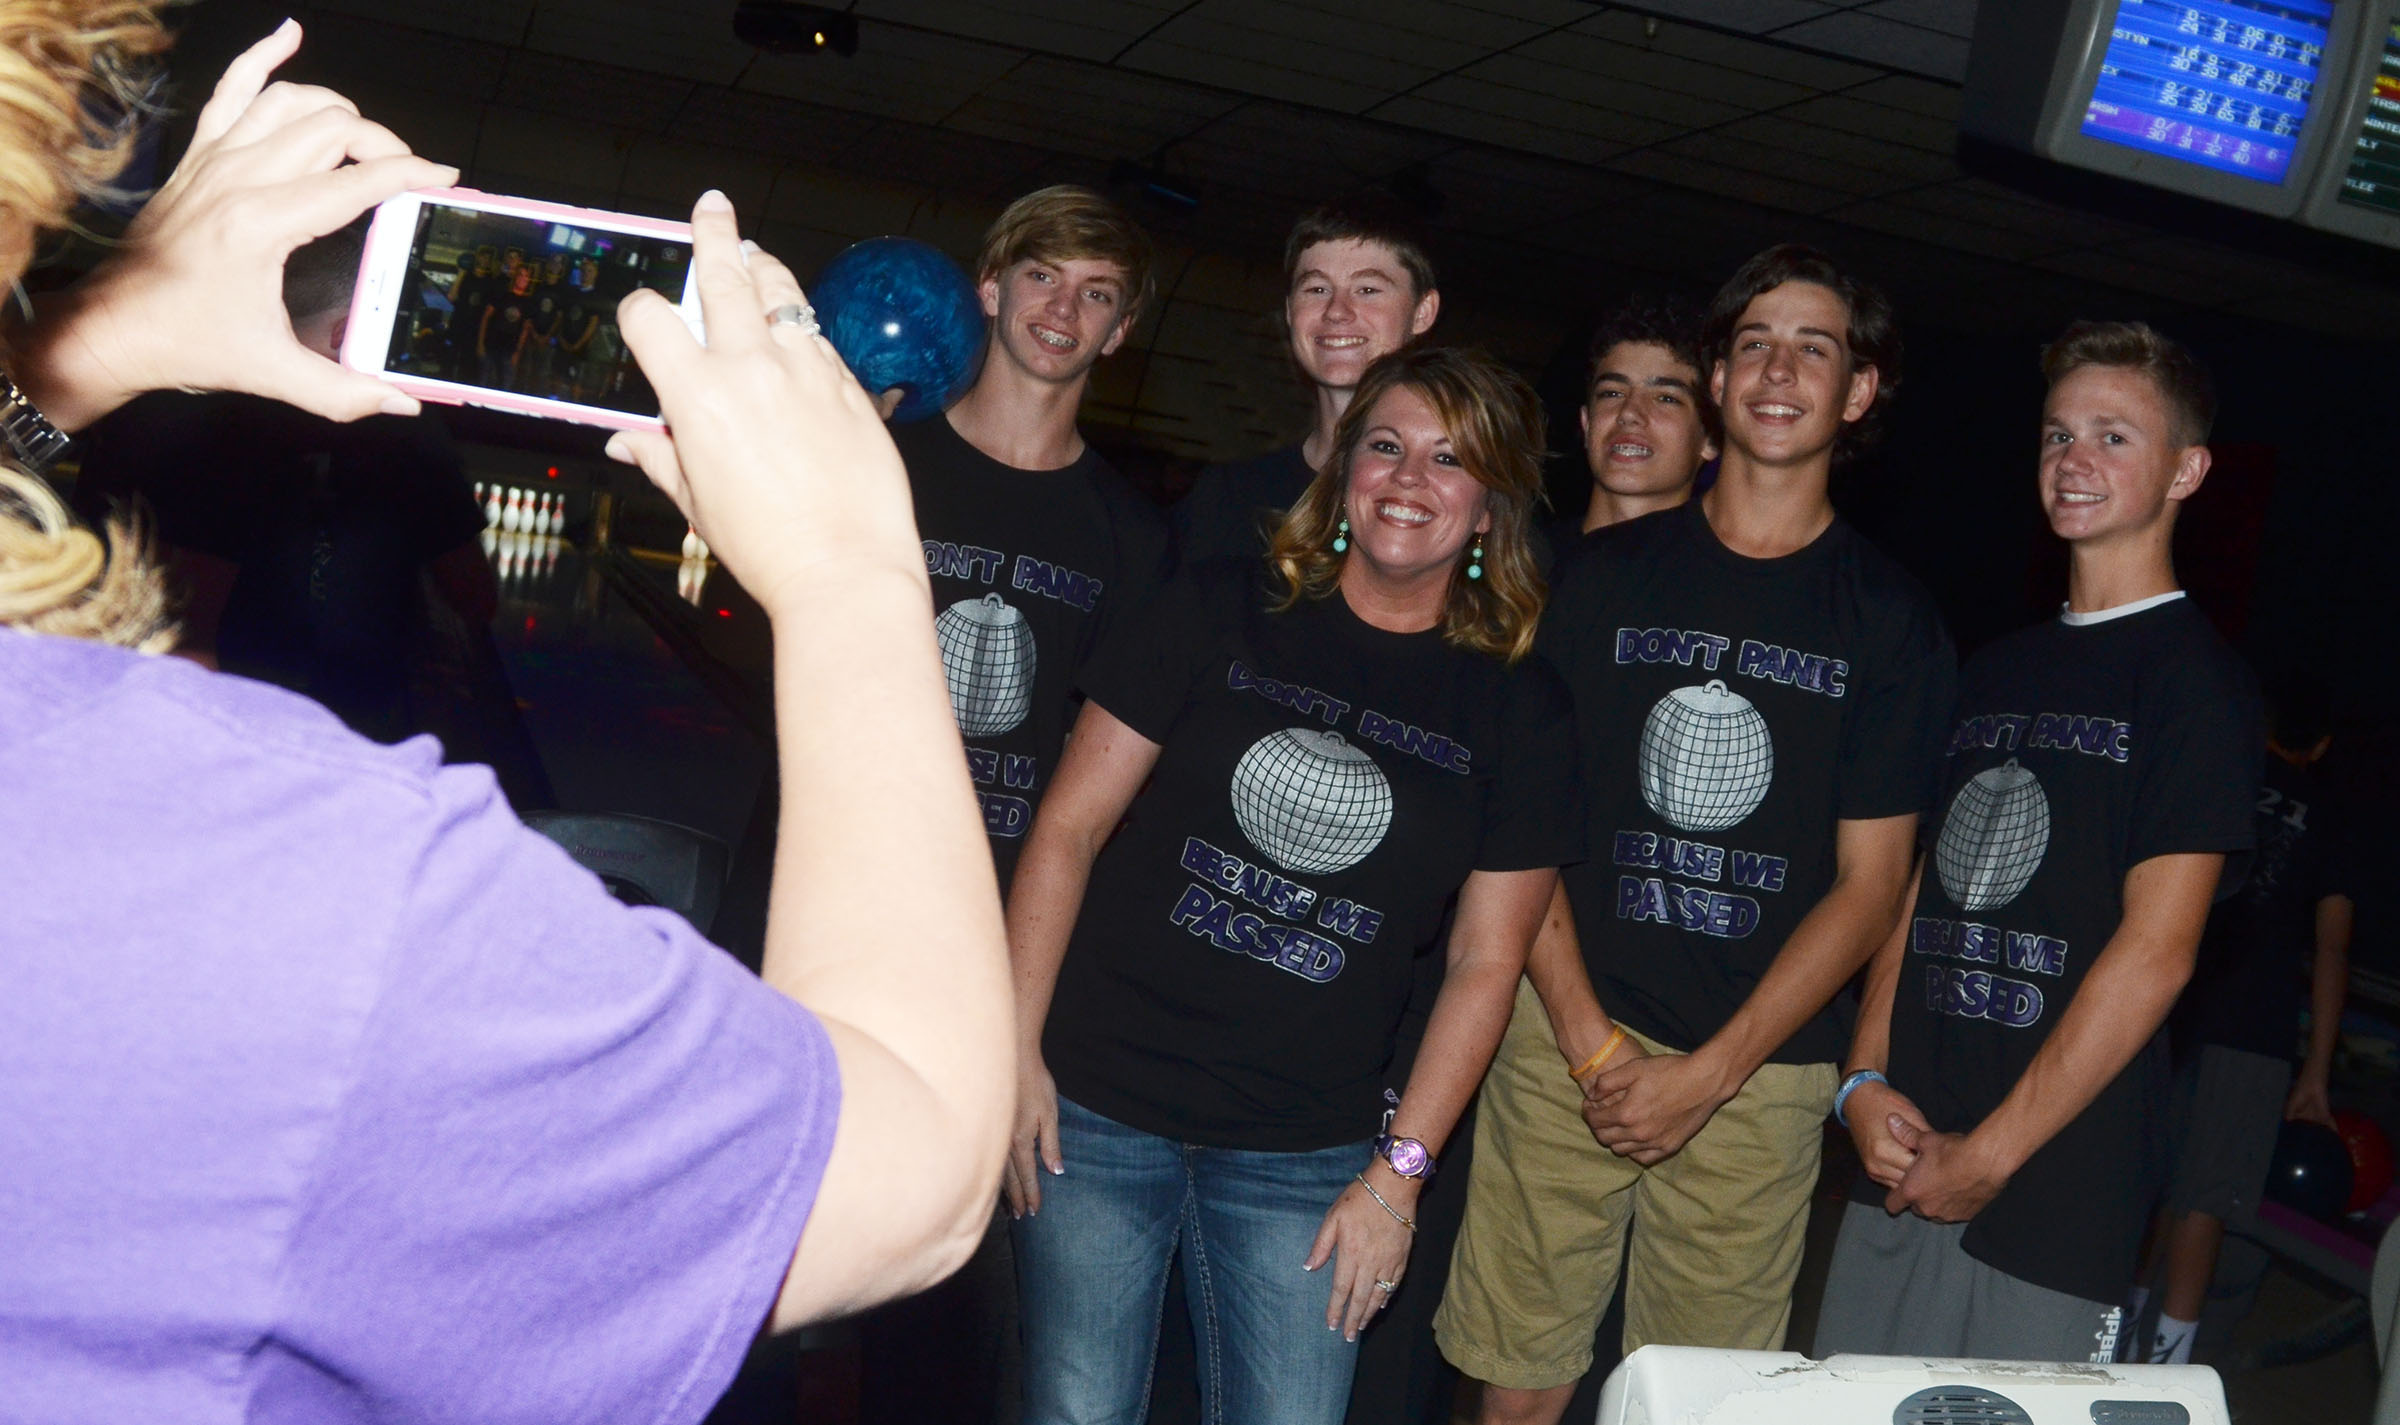 CMS Principal Elisha Rhodes smiles for a photo with eighth-graders, from left, Arren Hash, Tristin Faulkner, Kameron Smith, John Orberson and Blase Wheatley.